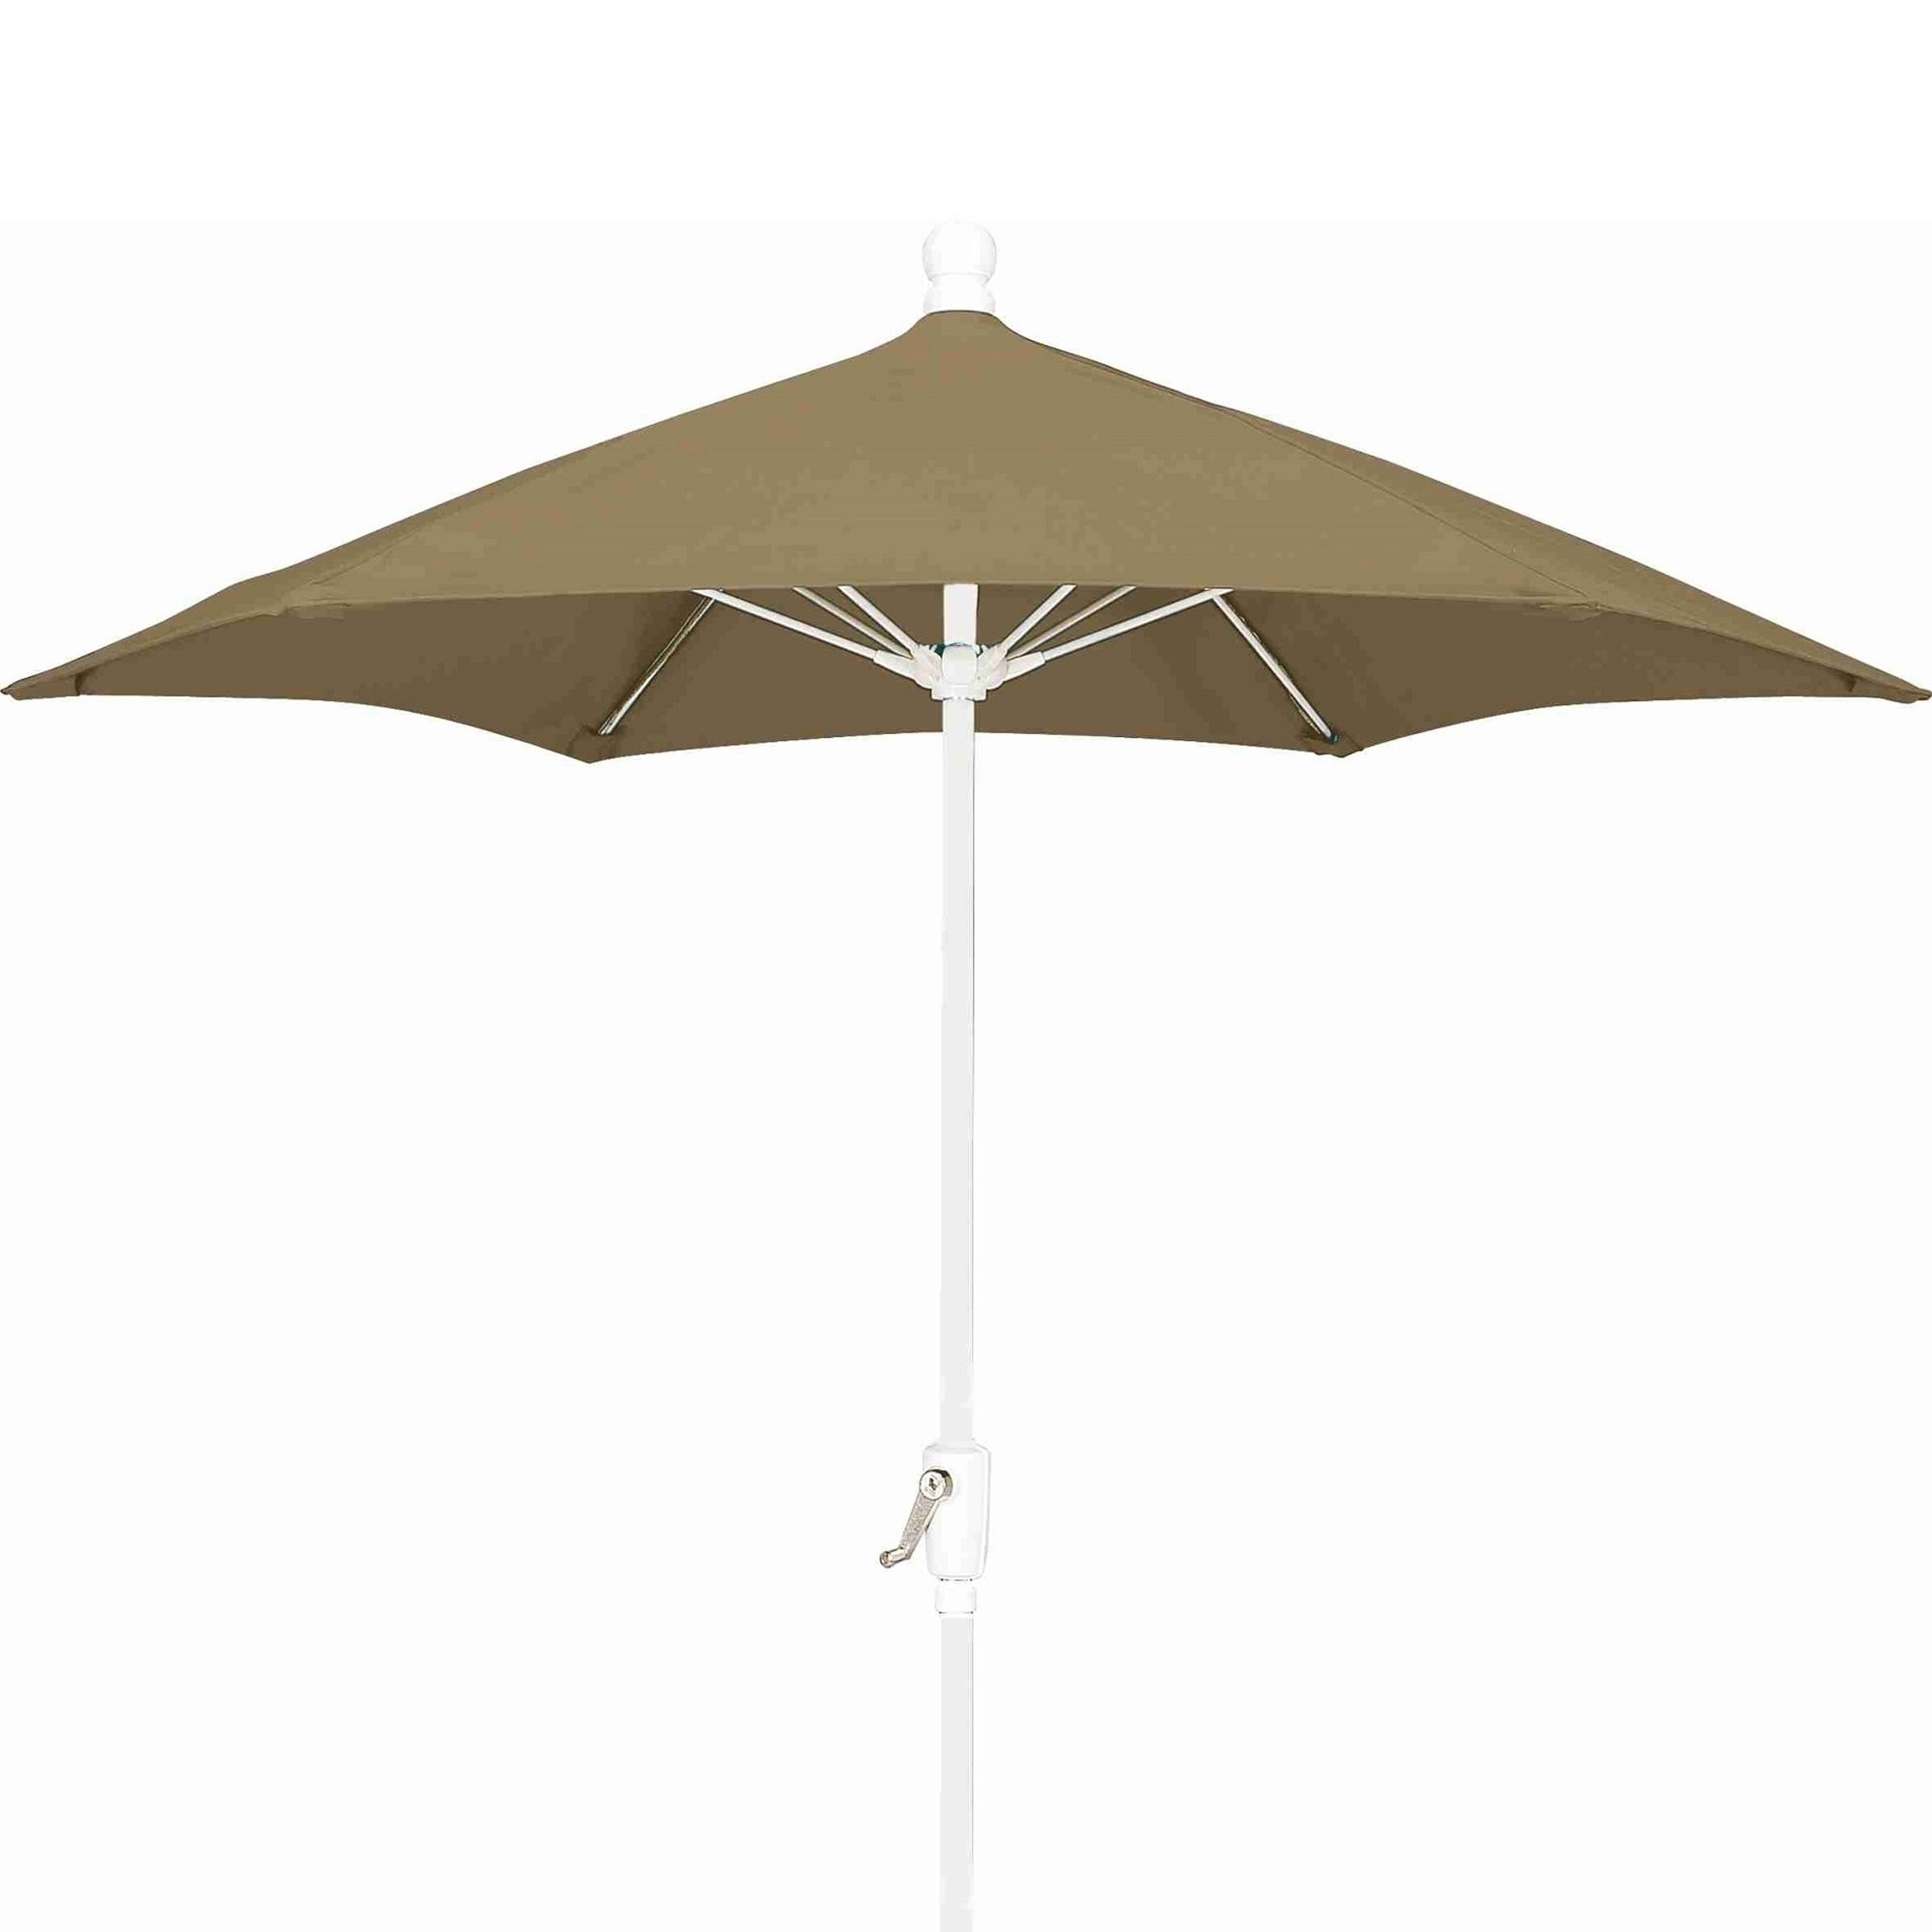 7.5 Ft Crank Lift Market Style Patio Umbrella With White Pole (Gallery 11 of 20)